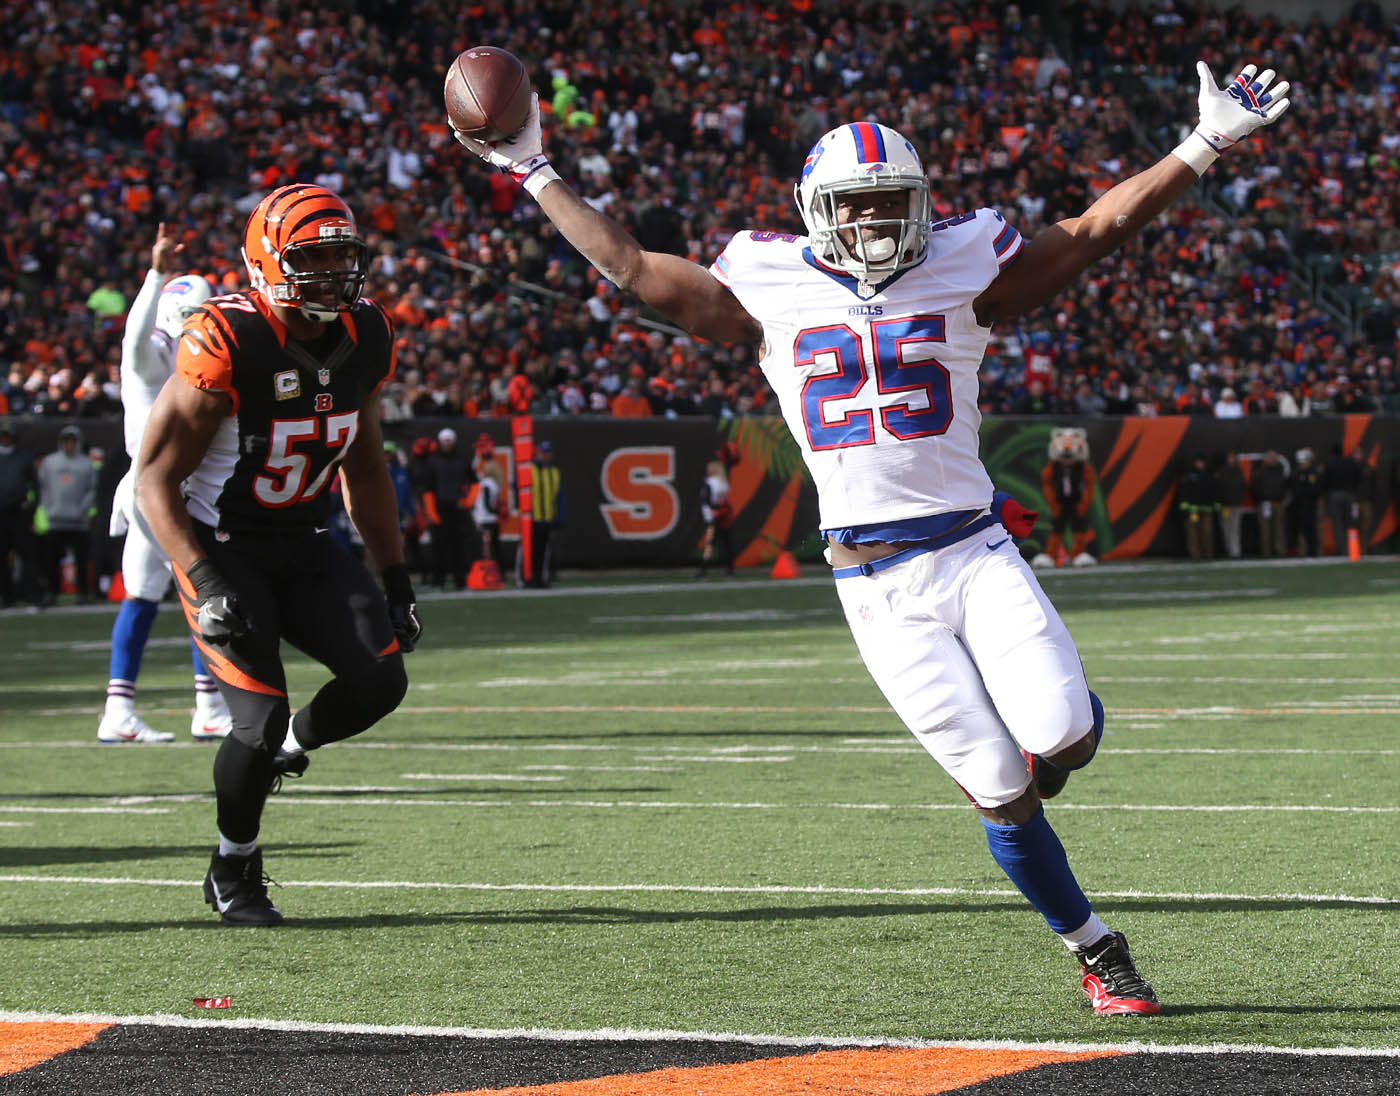 Buffalo Bills running back LeSean McCoy (25) rushes for a touchdown agaist Cincinnati Bengals outside linebacker Vincent Rey (57) in the first quarter at Paul Brown Stadium in Cincinnati Ohio on Sunday, Nov. 20, 2016.  (James P. McCoy/Buffalo News)